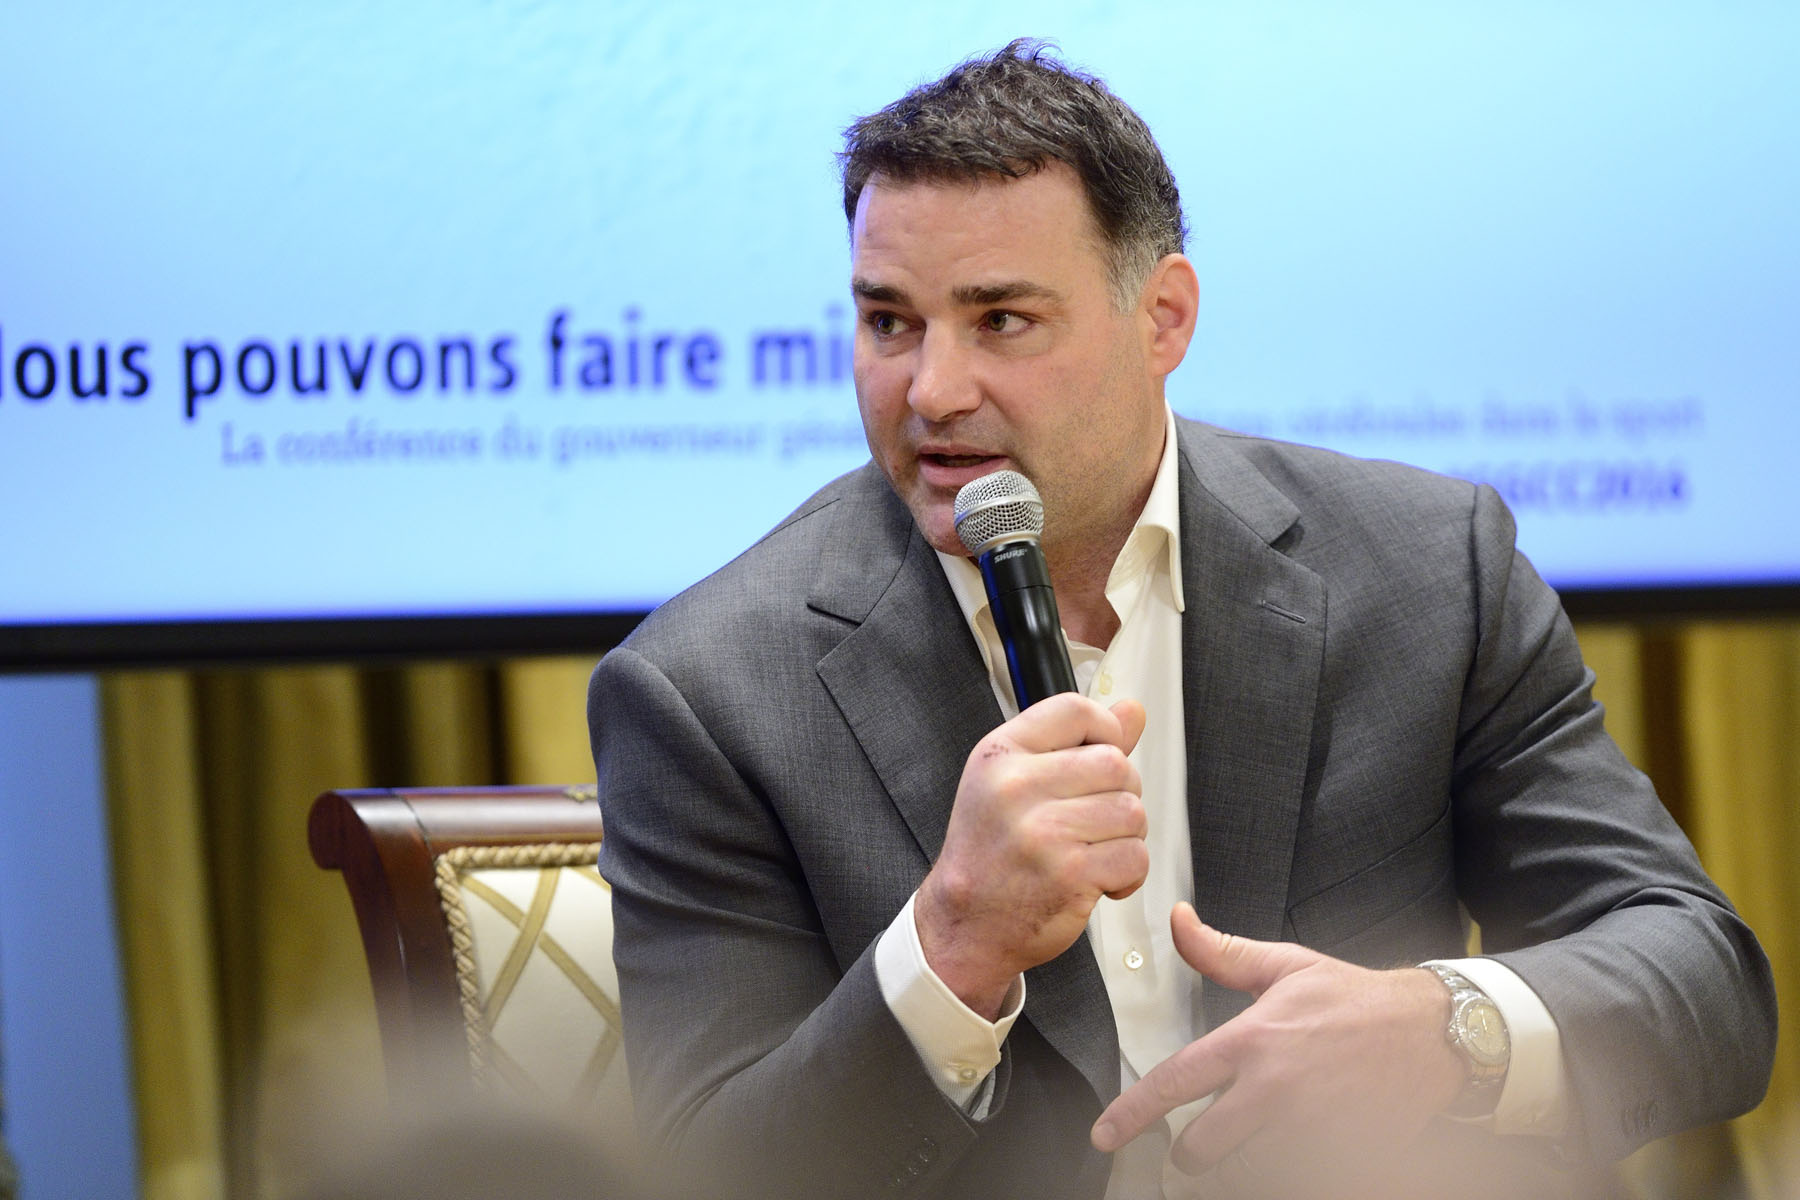 Retired NHL player Eric Lindros said how it is important to not work in silos and to develop a simple national strategy that focuses on keeping youth safe in sport.